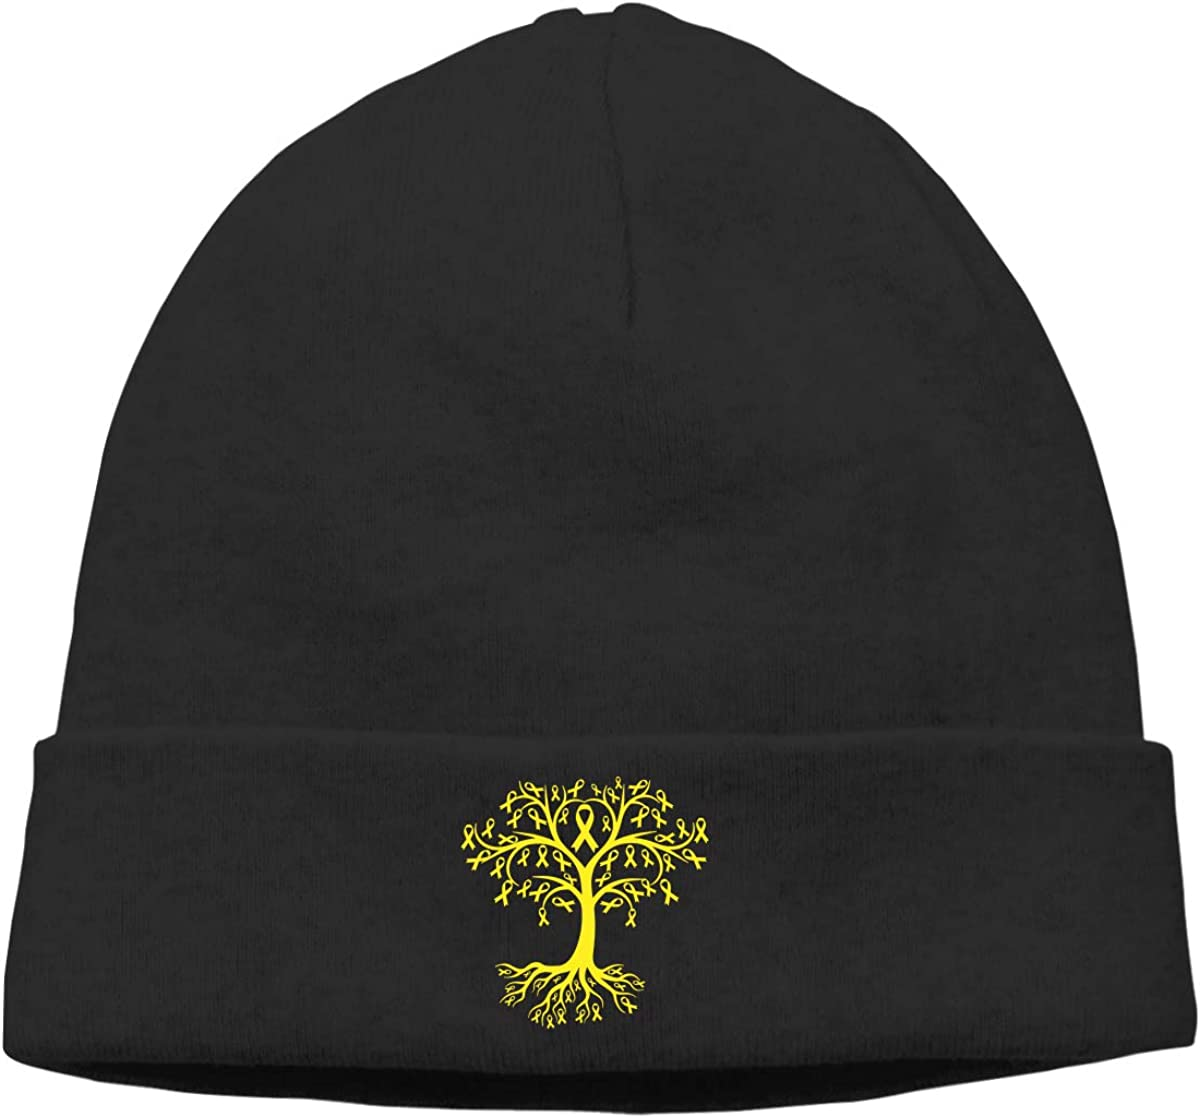 Bladder Cancer Awareness Tree Roots Men Womens Solid Color Beanie Hat Stretchy /& Soft Winter Cap Thin